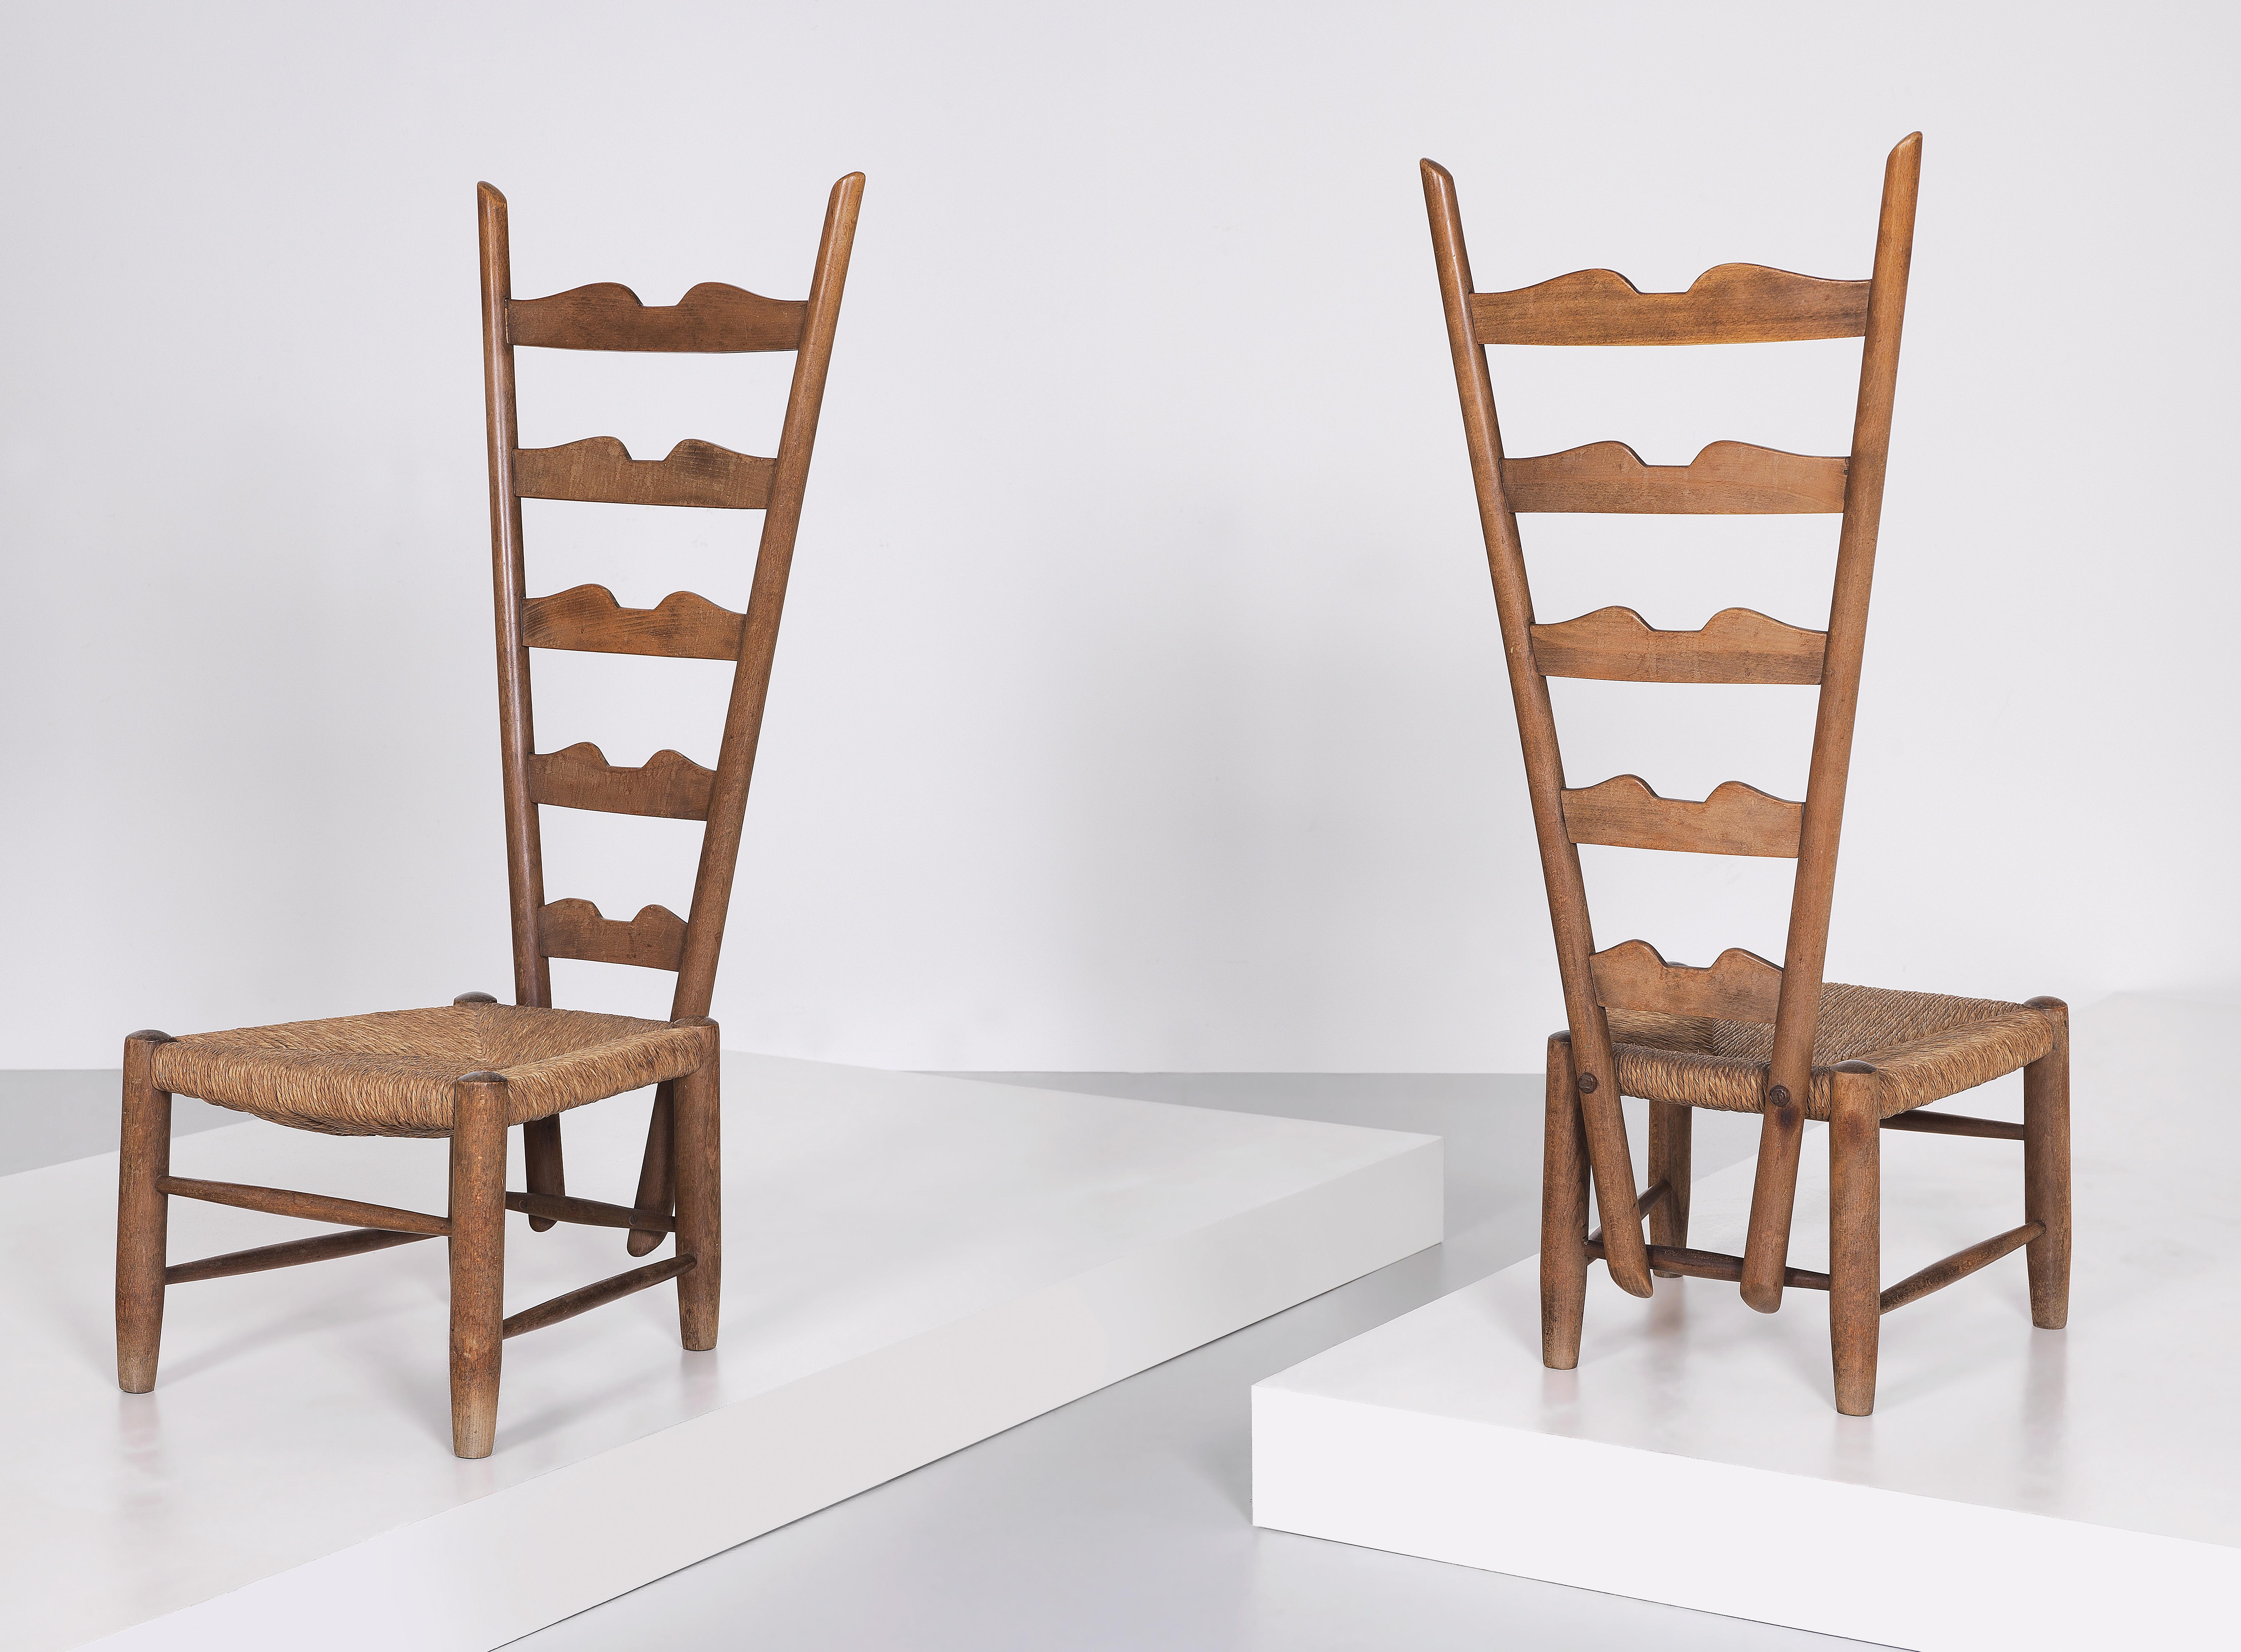 Two High Back Chairs Designed By Gio Ponti Design 2016 11 03 Realized Price Eur 10 625 Dorotheum